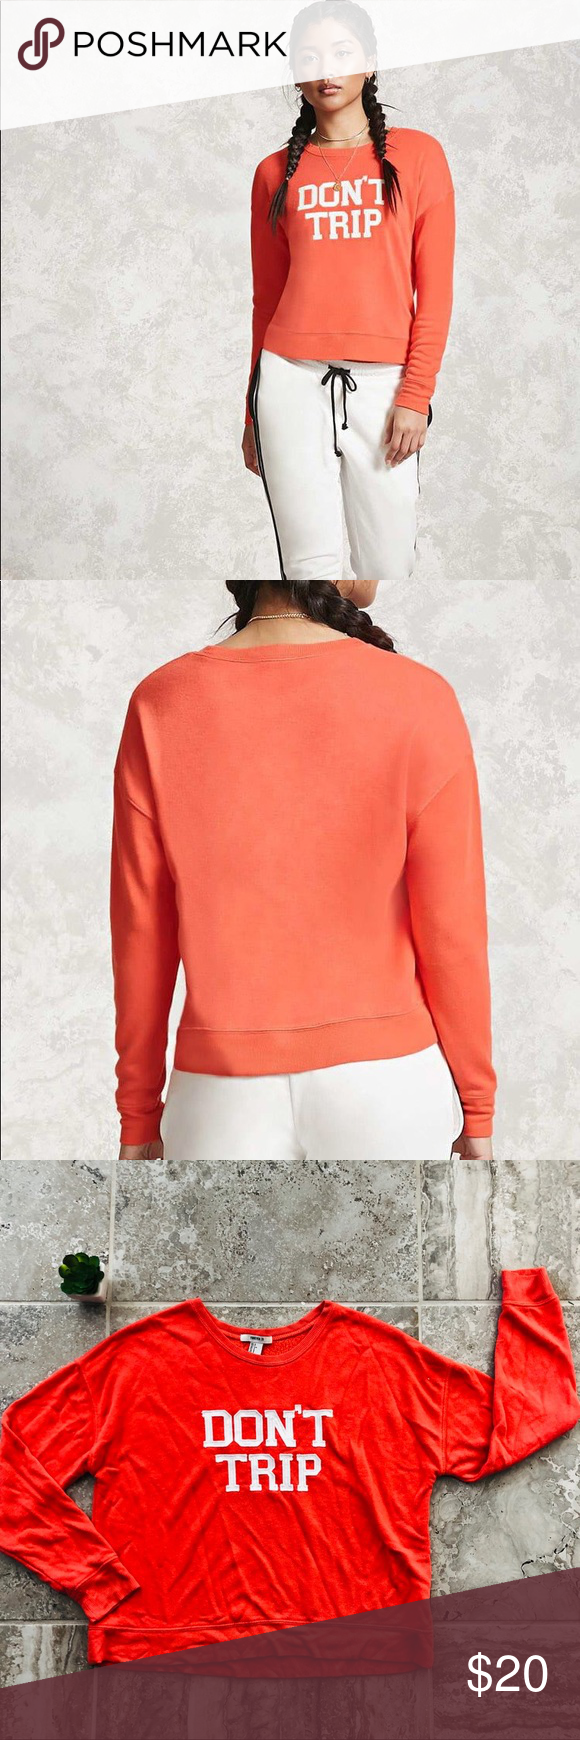 Forever 21 Don T Trip Sweatshirt Coral White S Fall Winter Wardrobe Knit Top Forever21 Tops [ 1740 x 580 Pixel ]